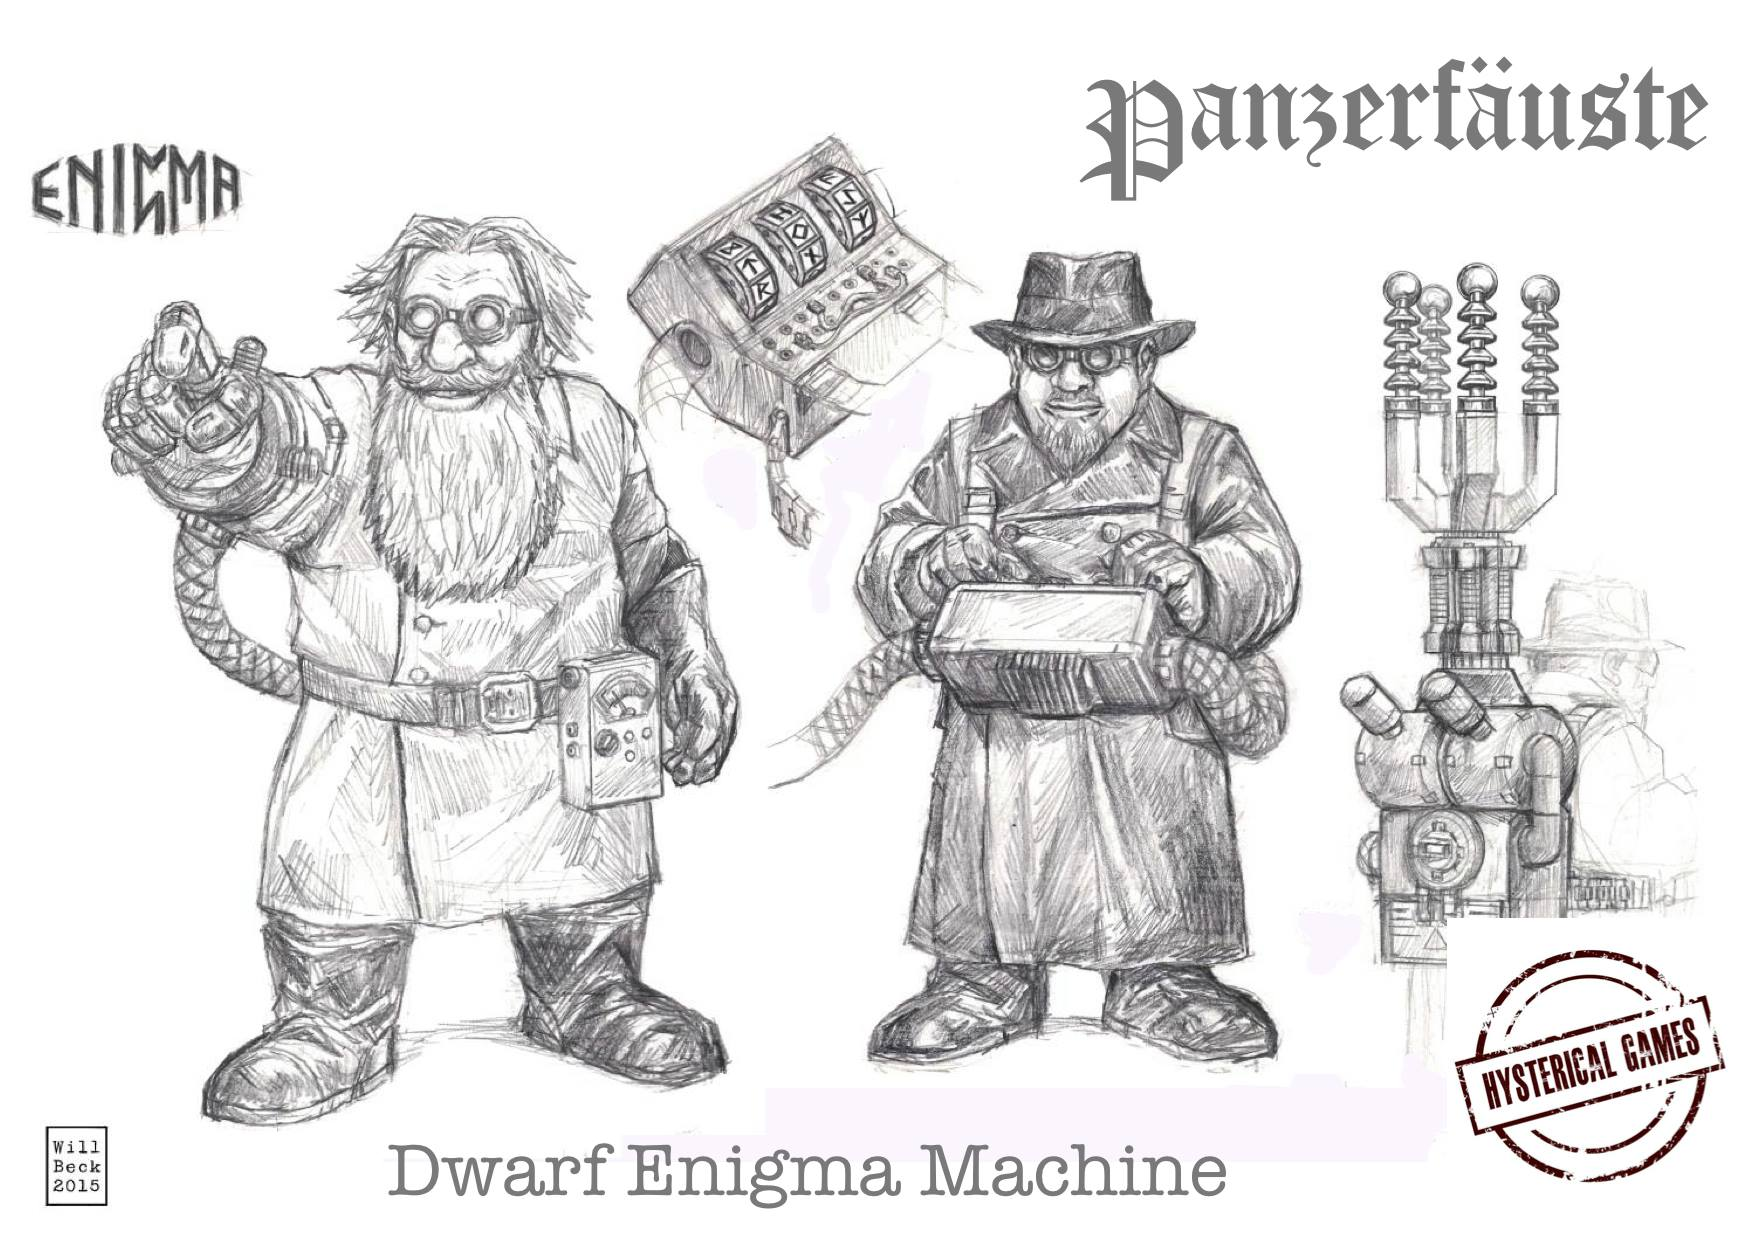 hysterical games show off the dwarven enigma machine